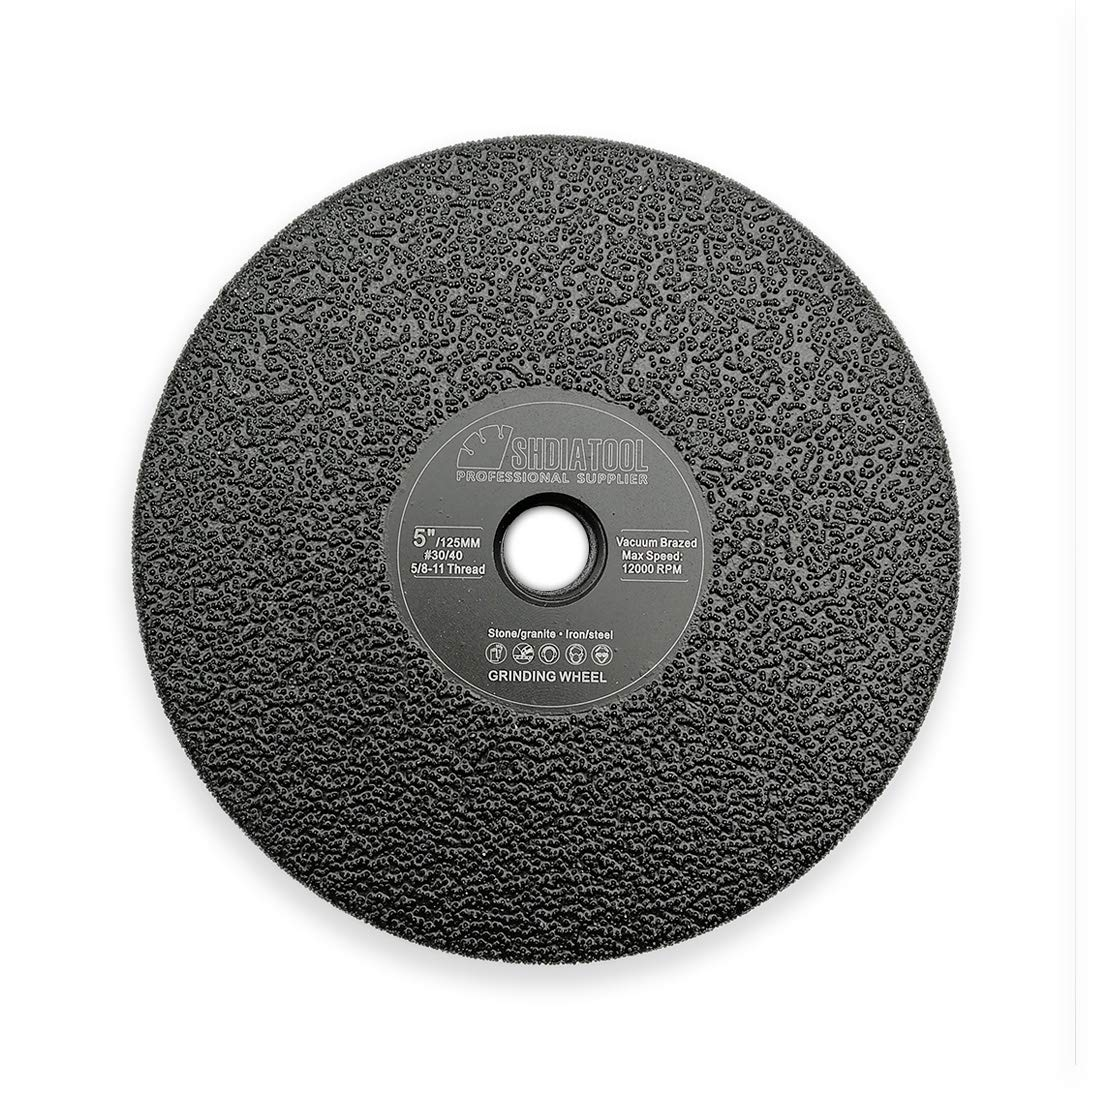 SHDIATOOL Diamond Flat Grinding Wheel Diameter 5 Inche 5/8-11 Thread Shaping or Beveling Granite Marble Concrete